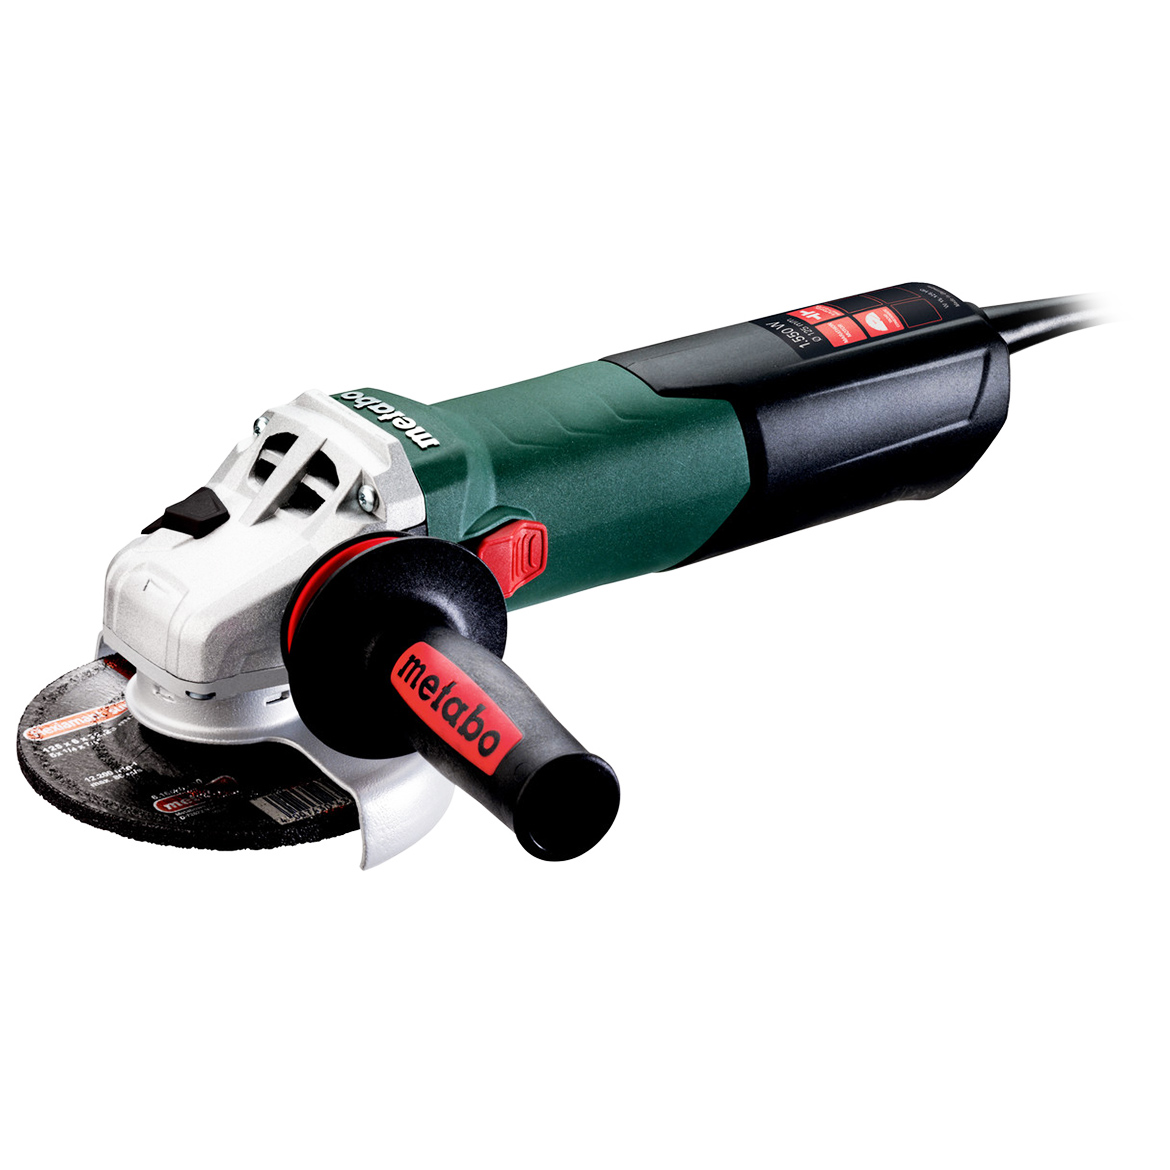 Metabo 600465420 5-Inch 13.2-Amp 9,600 RPM Angle Grinder with Elock-On Switch